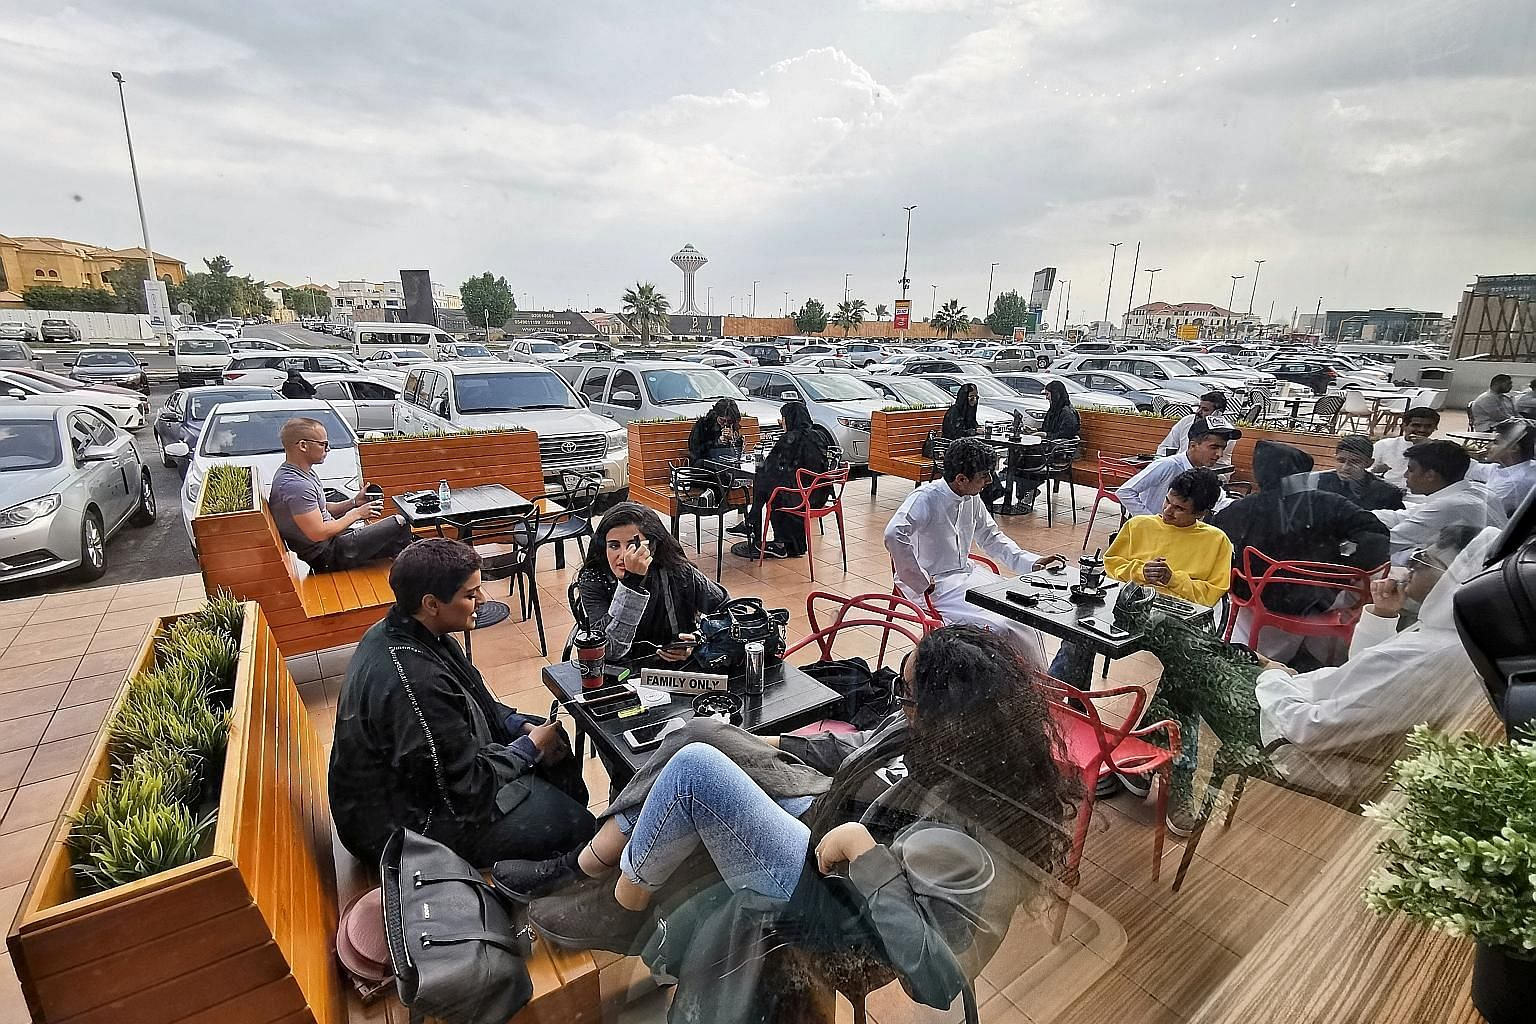 Men and women at a cafe in Khobar, Saudi Arabia, yesterday. Many restaurants and cafes in the country have separate entrances for women and partitions or rooms for families where women are not visible to single men.